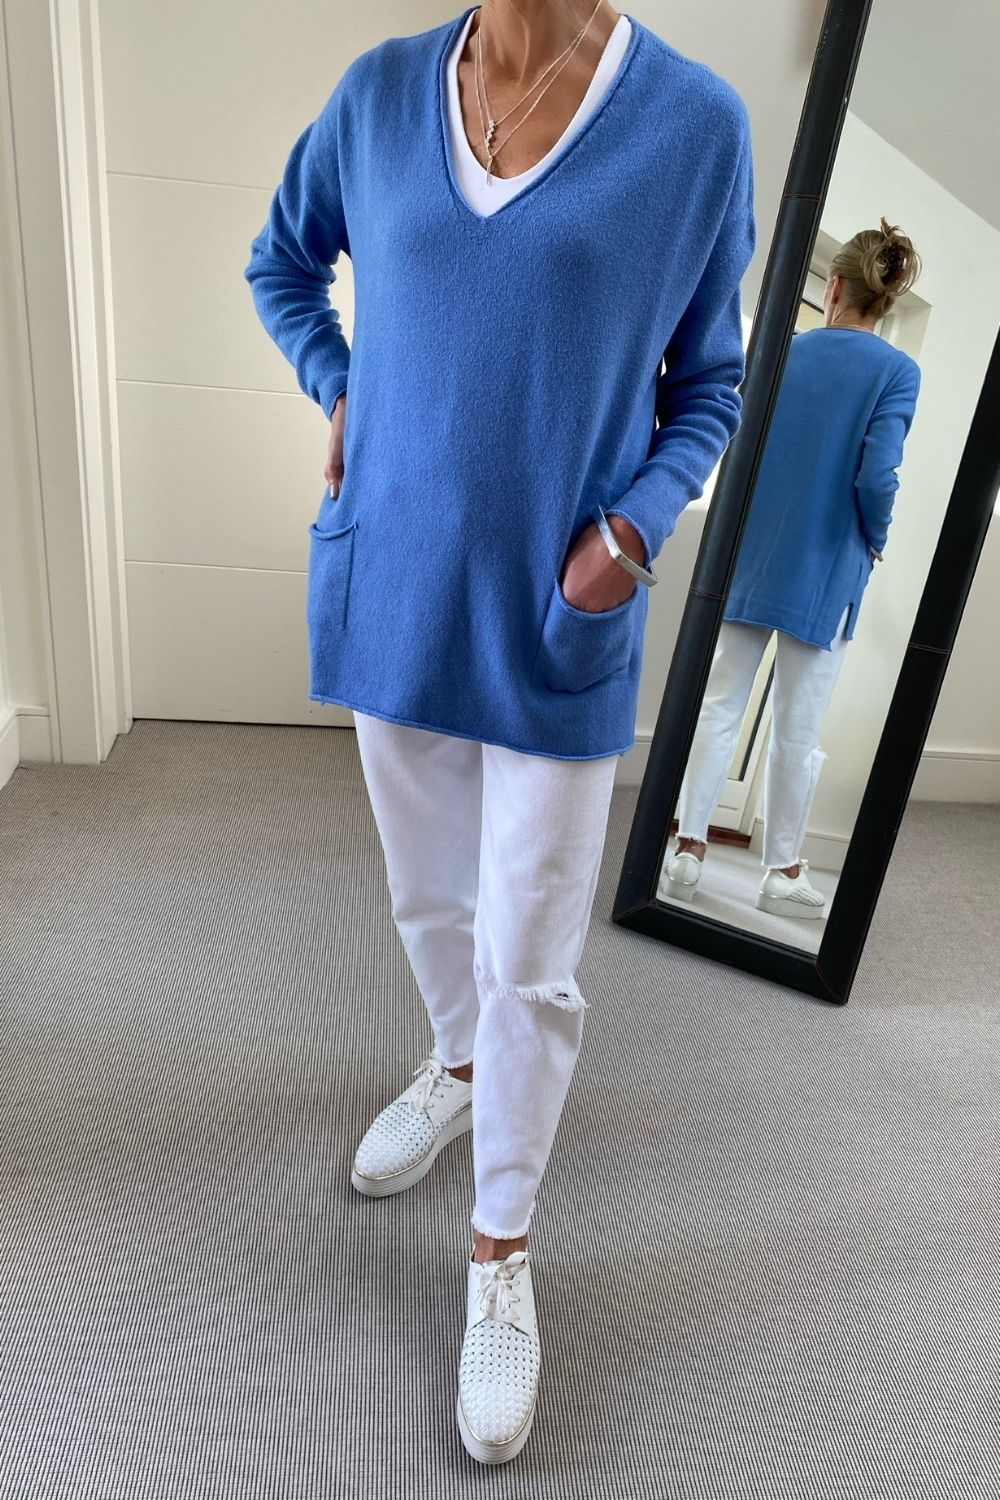 New Oversize V-Neck Two Pocket Sweater in Cornflower Blue